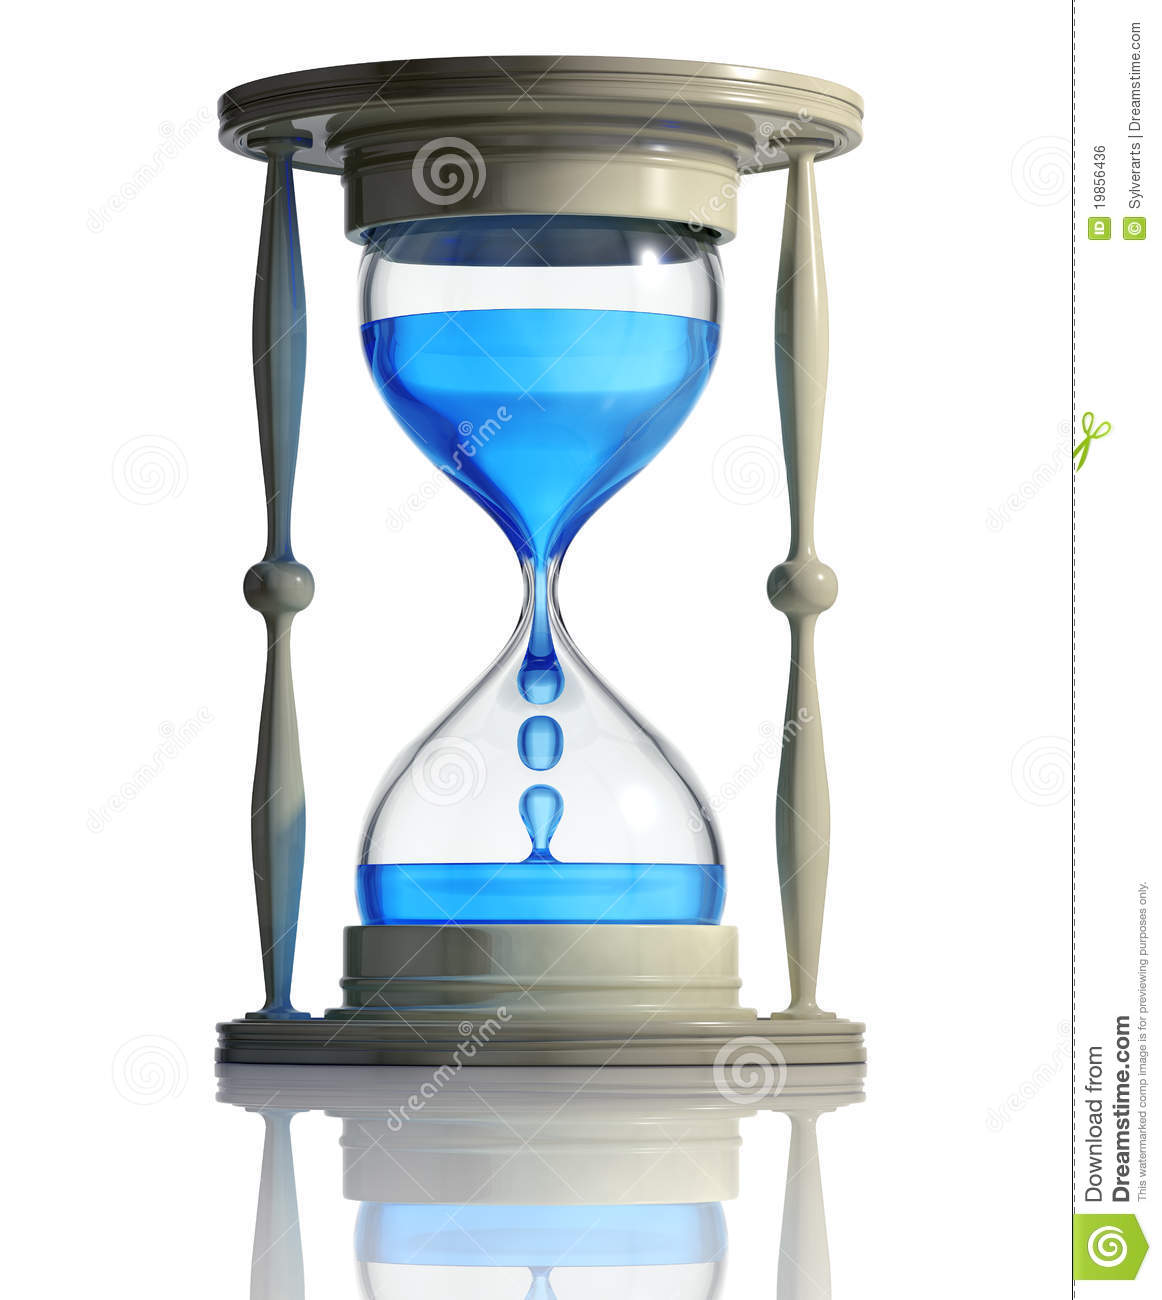 Sand watch with water inside royalty free stock image for Youtube h2o